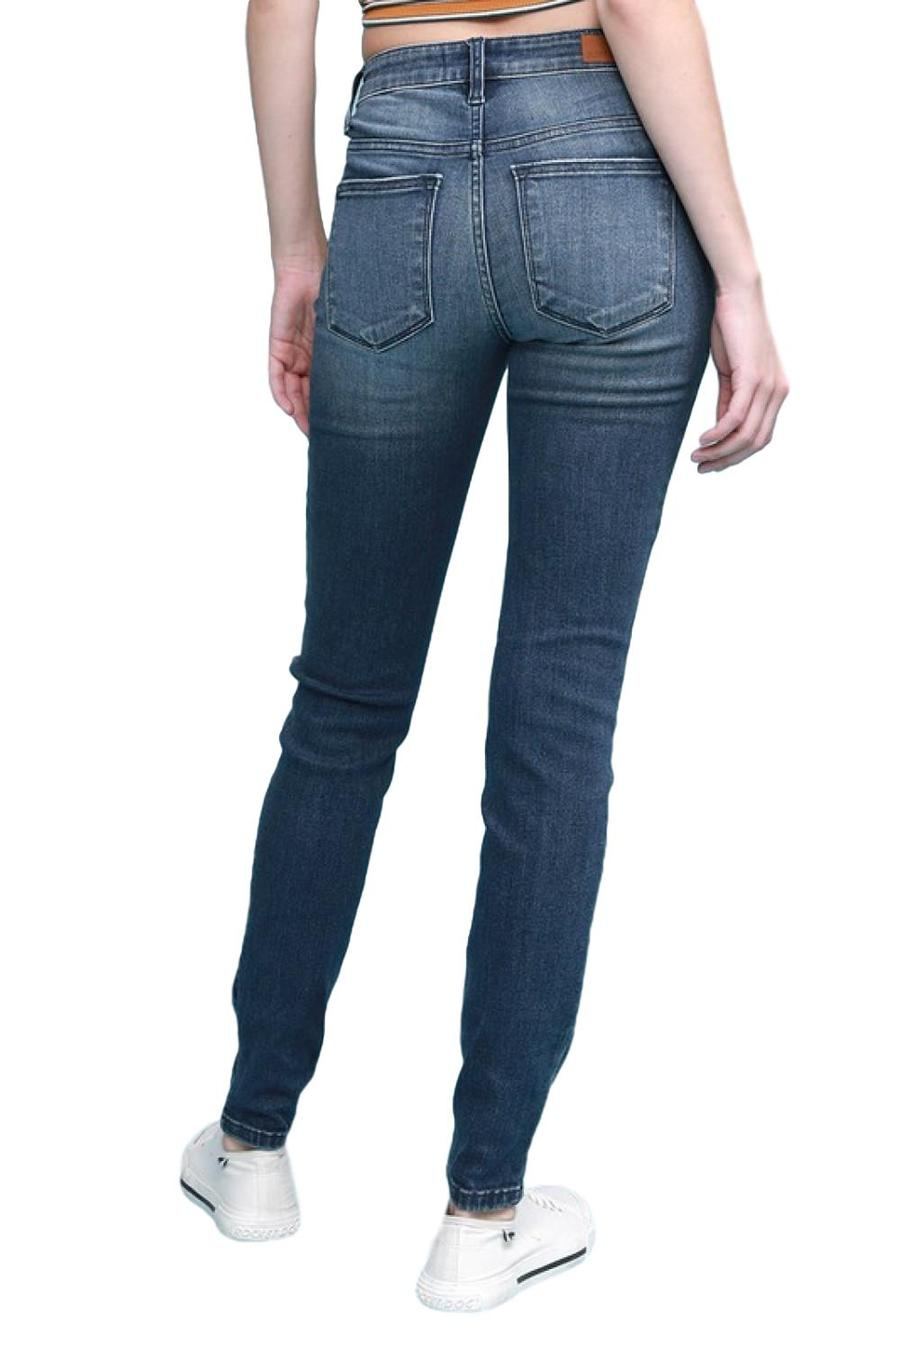 Judy Blue Distressed Midrise Skinny 82133